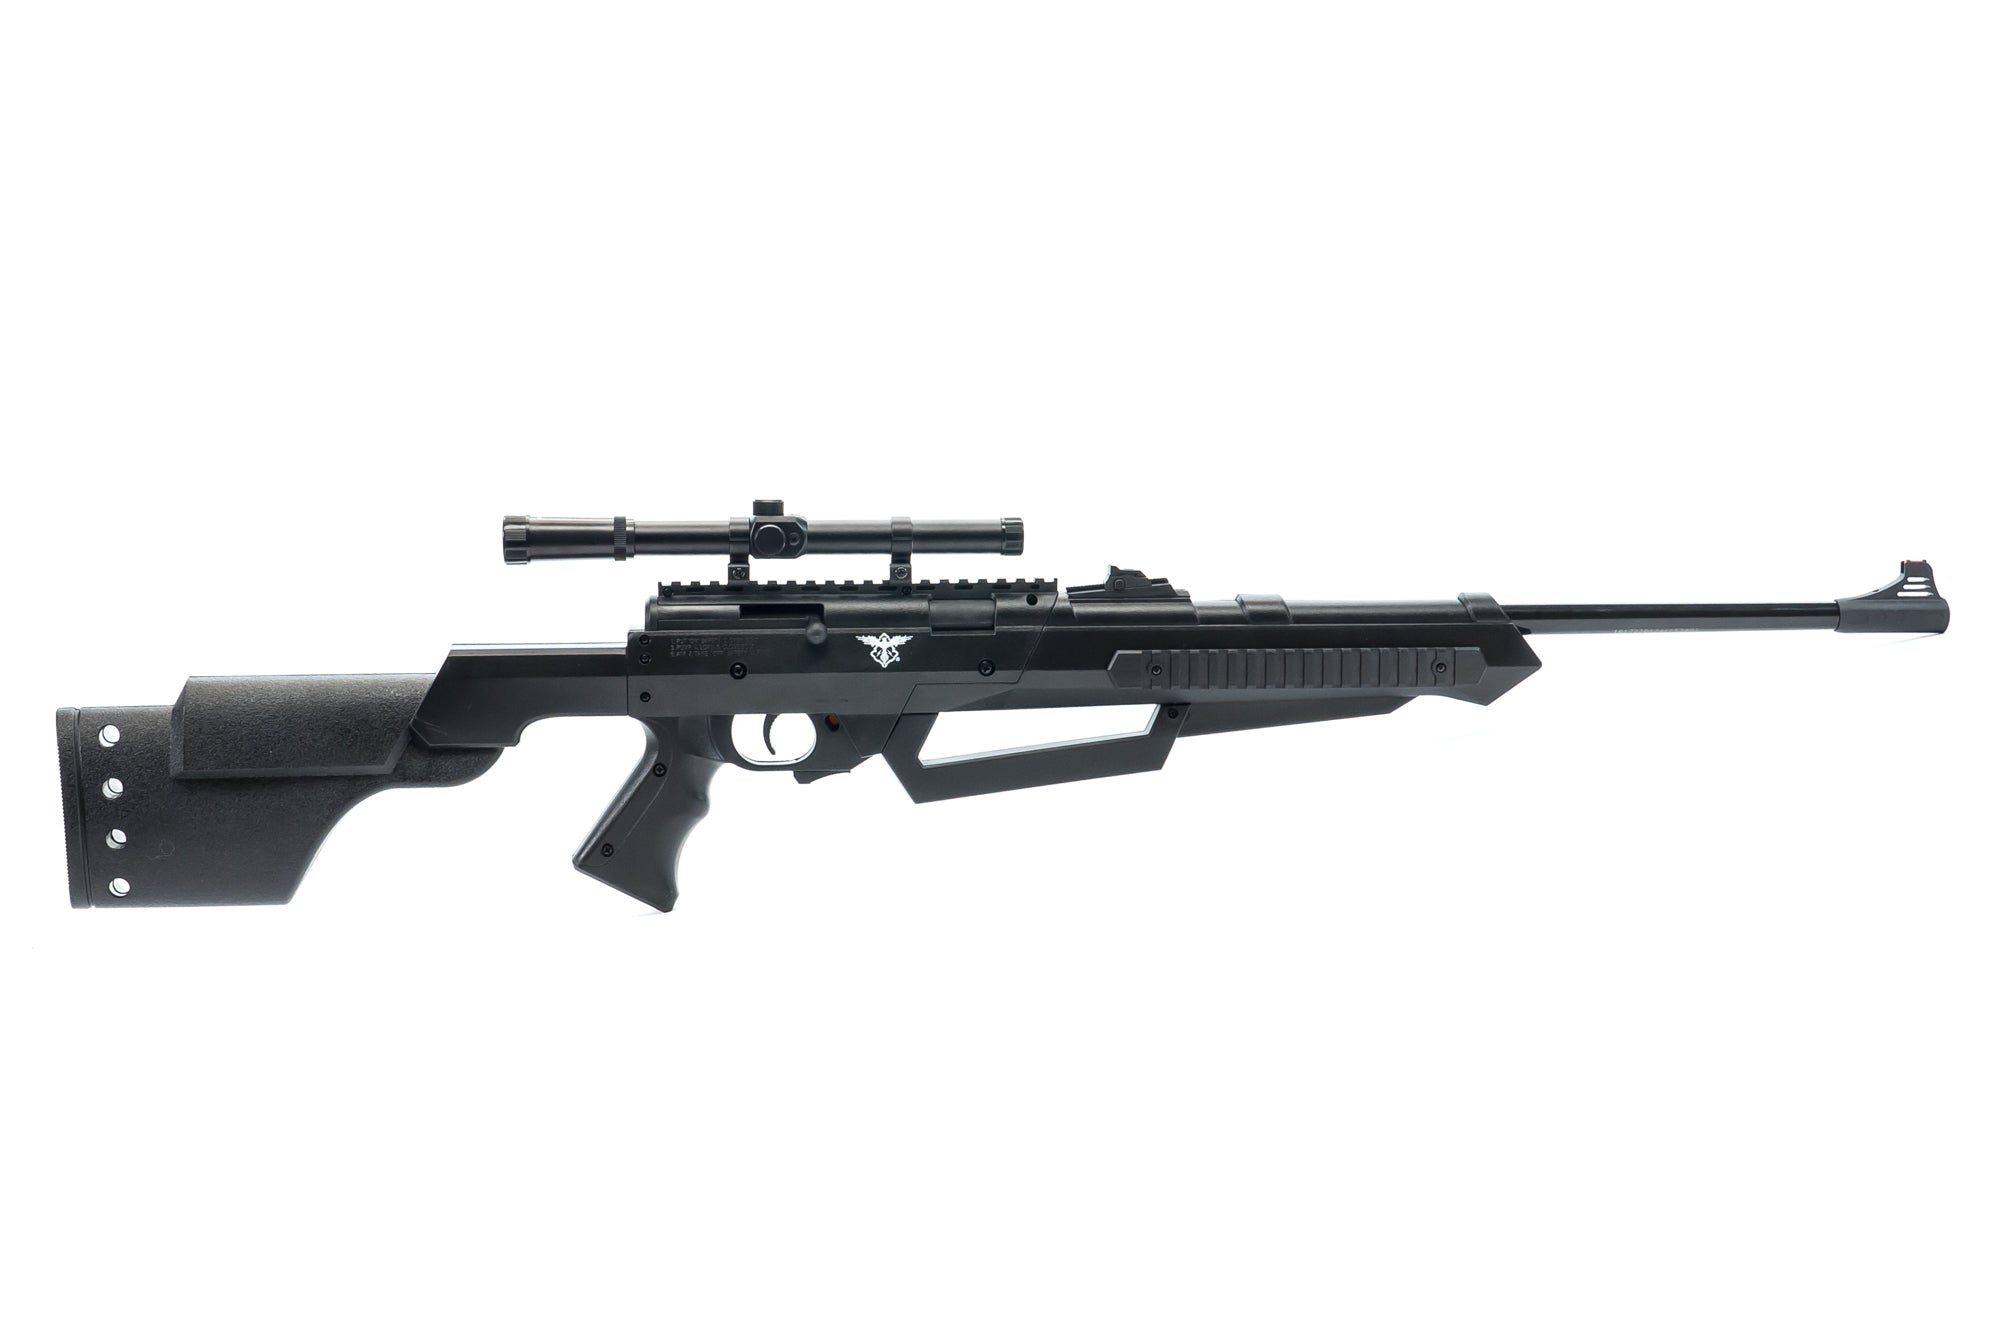 Black Ops S950 Air Rifle - Multi-Pump  177 Airgun - BB/Pellet Gun with  Scope Included